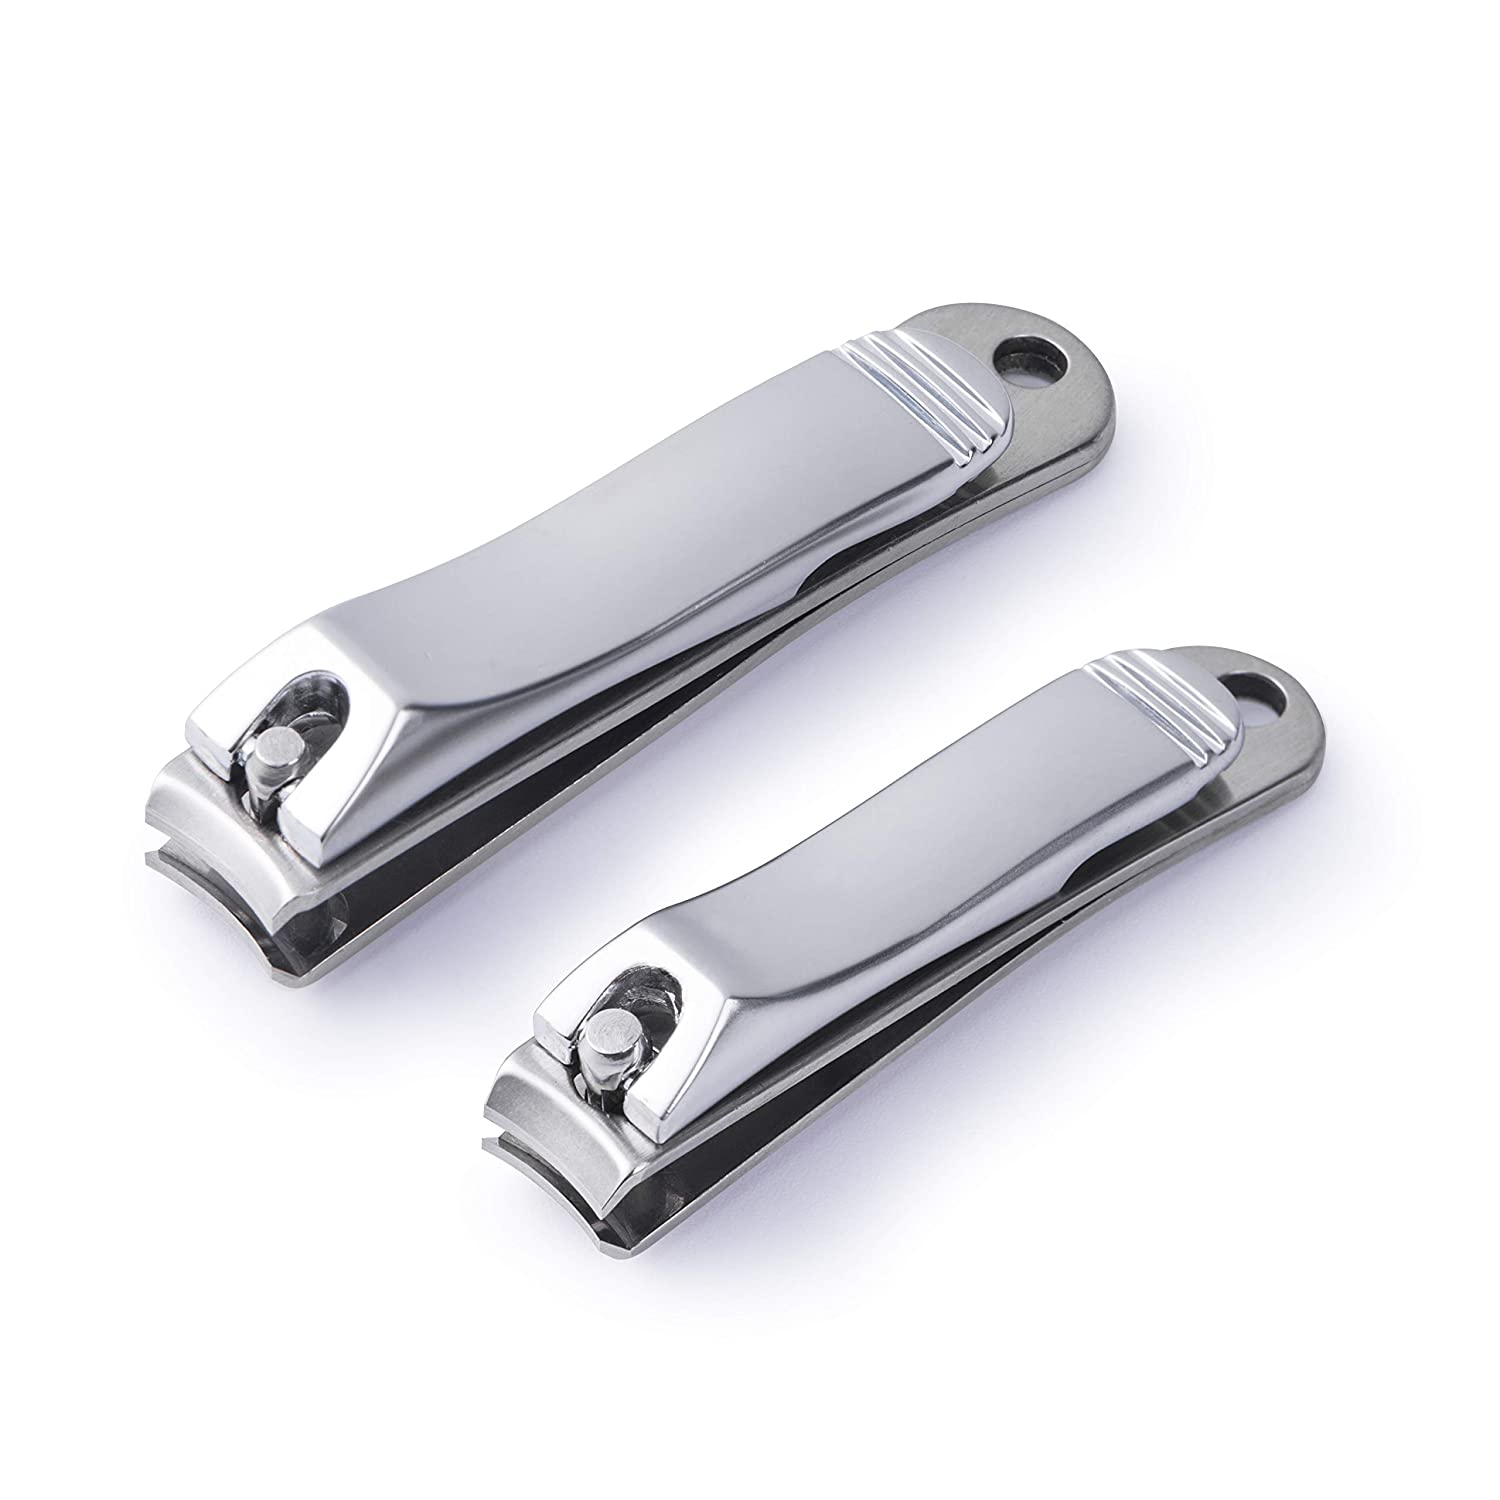 Attootric Stainless Steel Nail Clipper, Fingernail and Toenail Nail Clipper Set for Woman and Man Sharp Nail Cutter with Storage Bag, Set of 2 Luxman